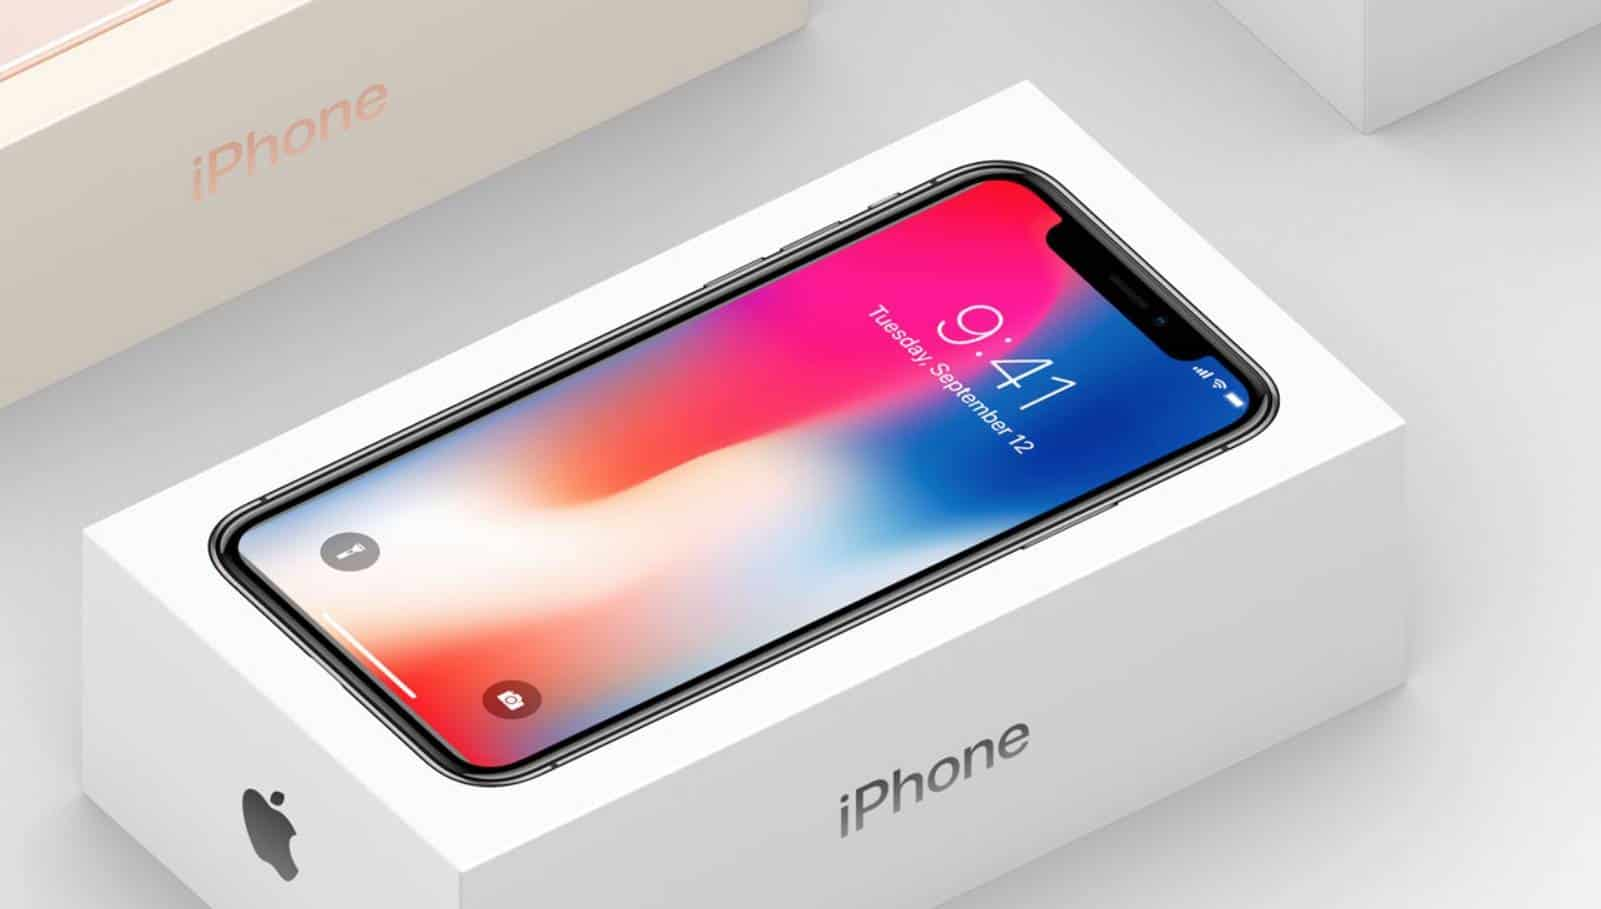 Real and fake iPhones packaging